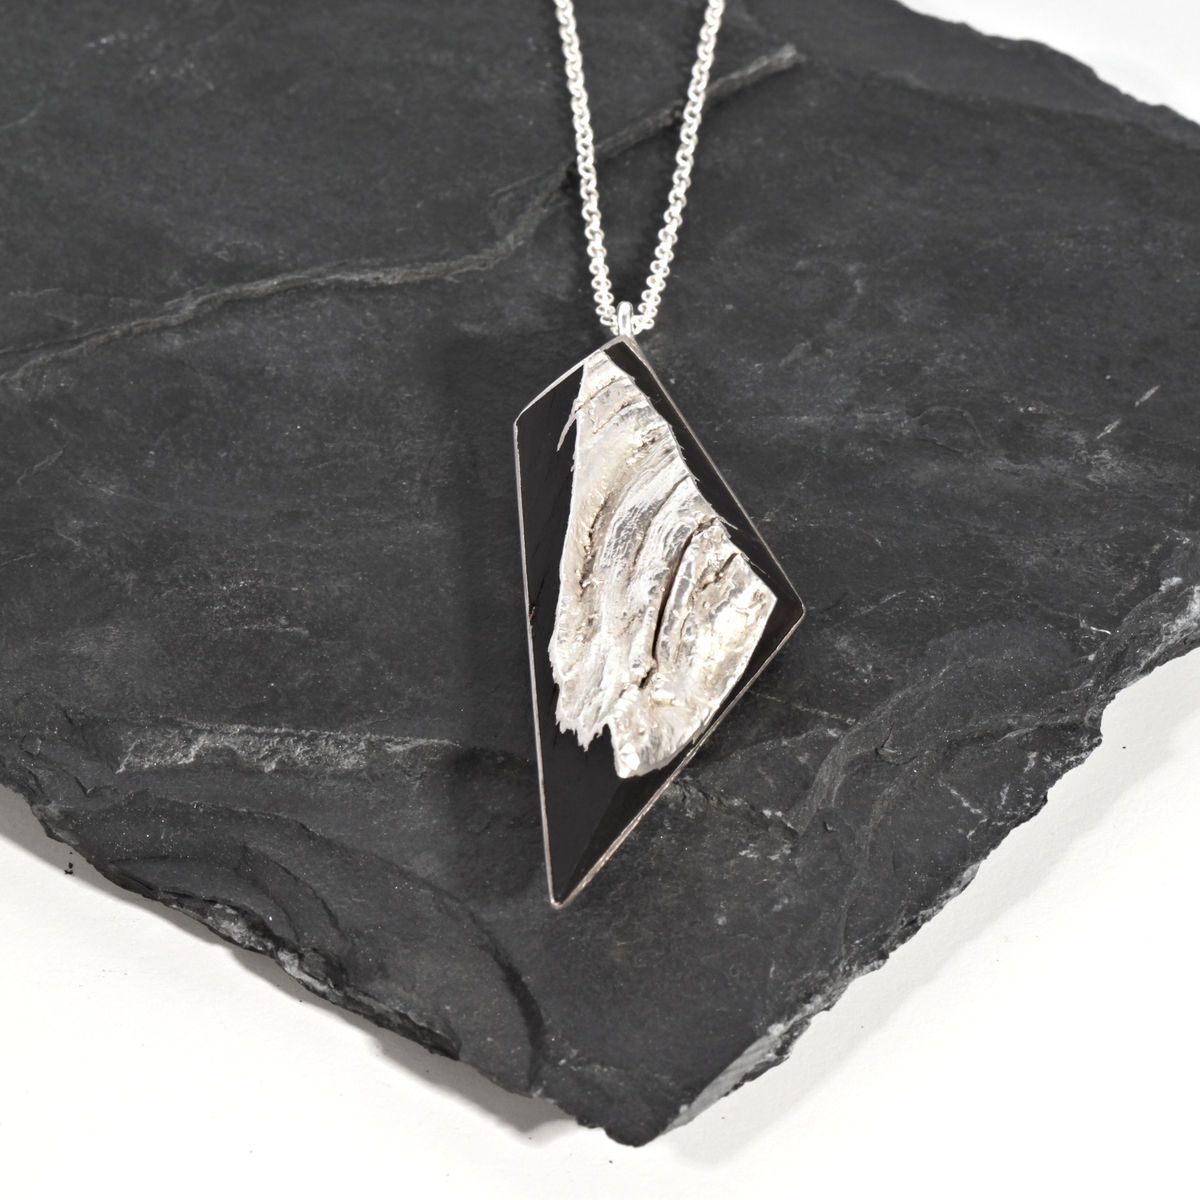 Bog oak pendant finished in silver - product images  of